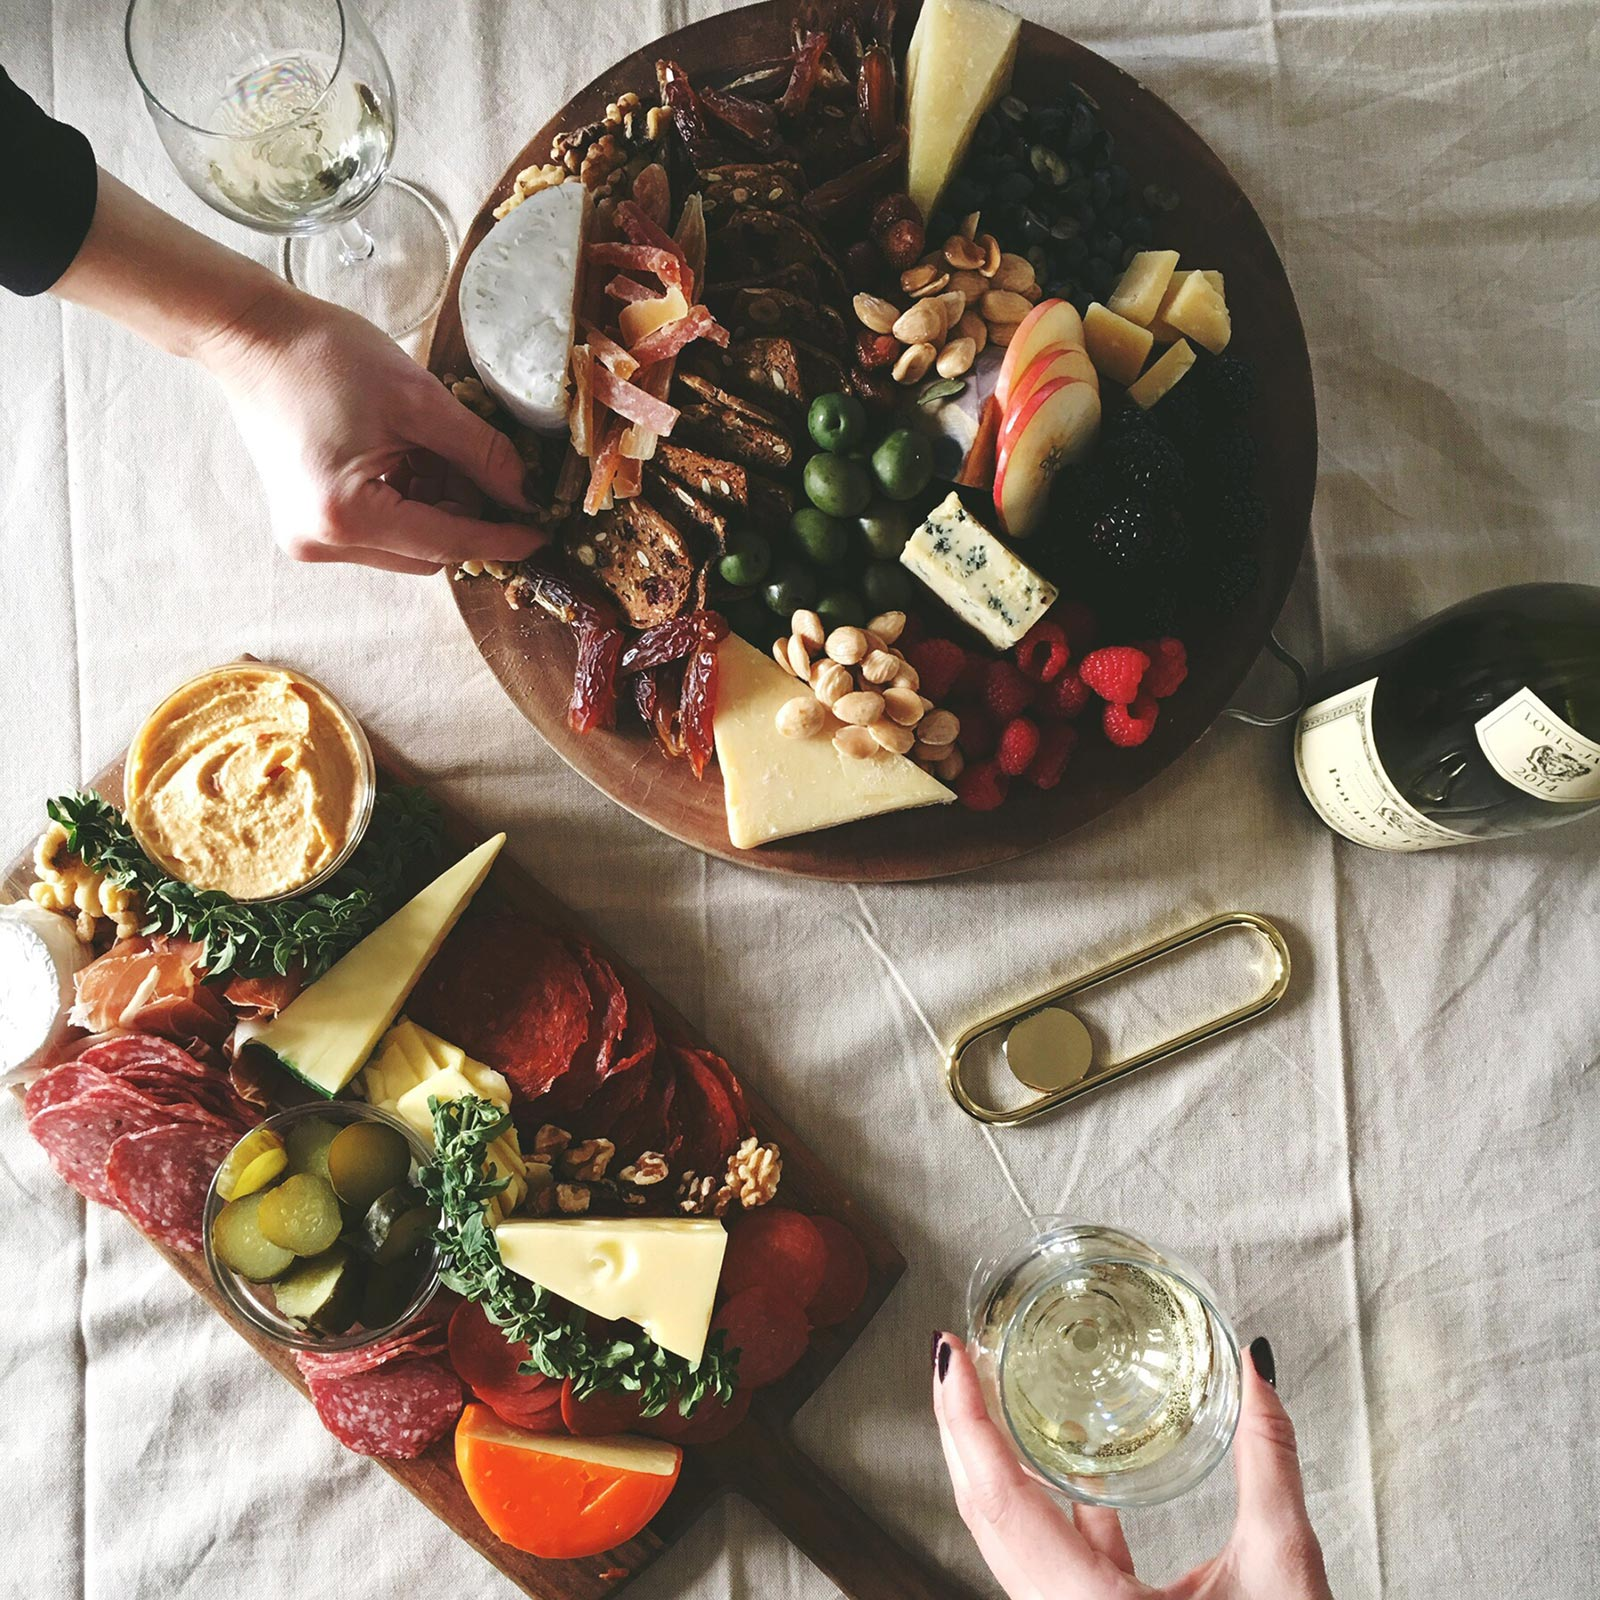 flat lay of charcuterie and cheese plate with wine glasses and bottles and a bottle opener